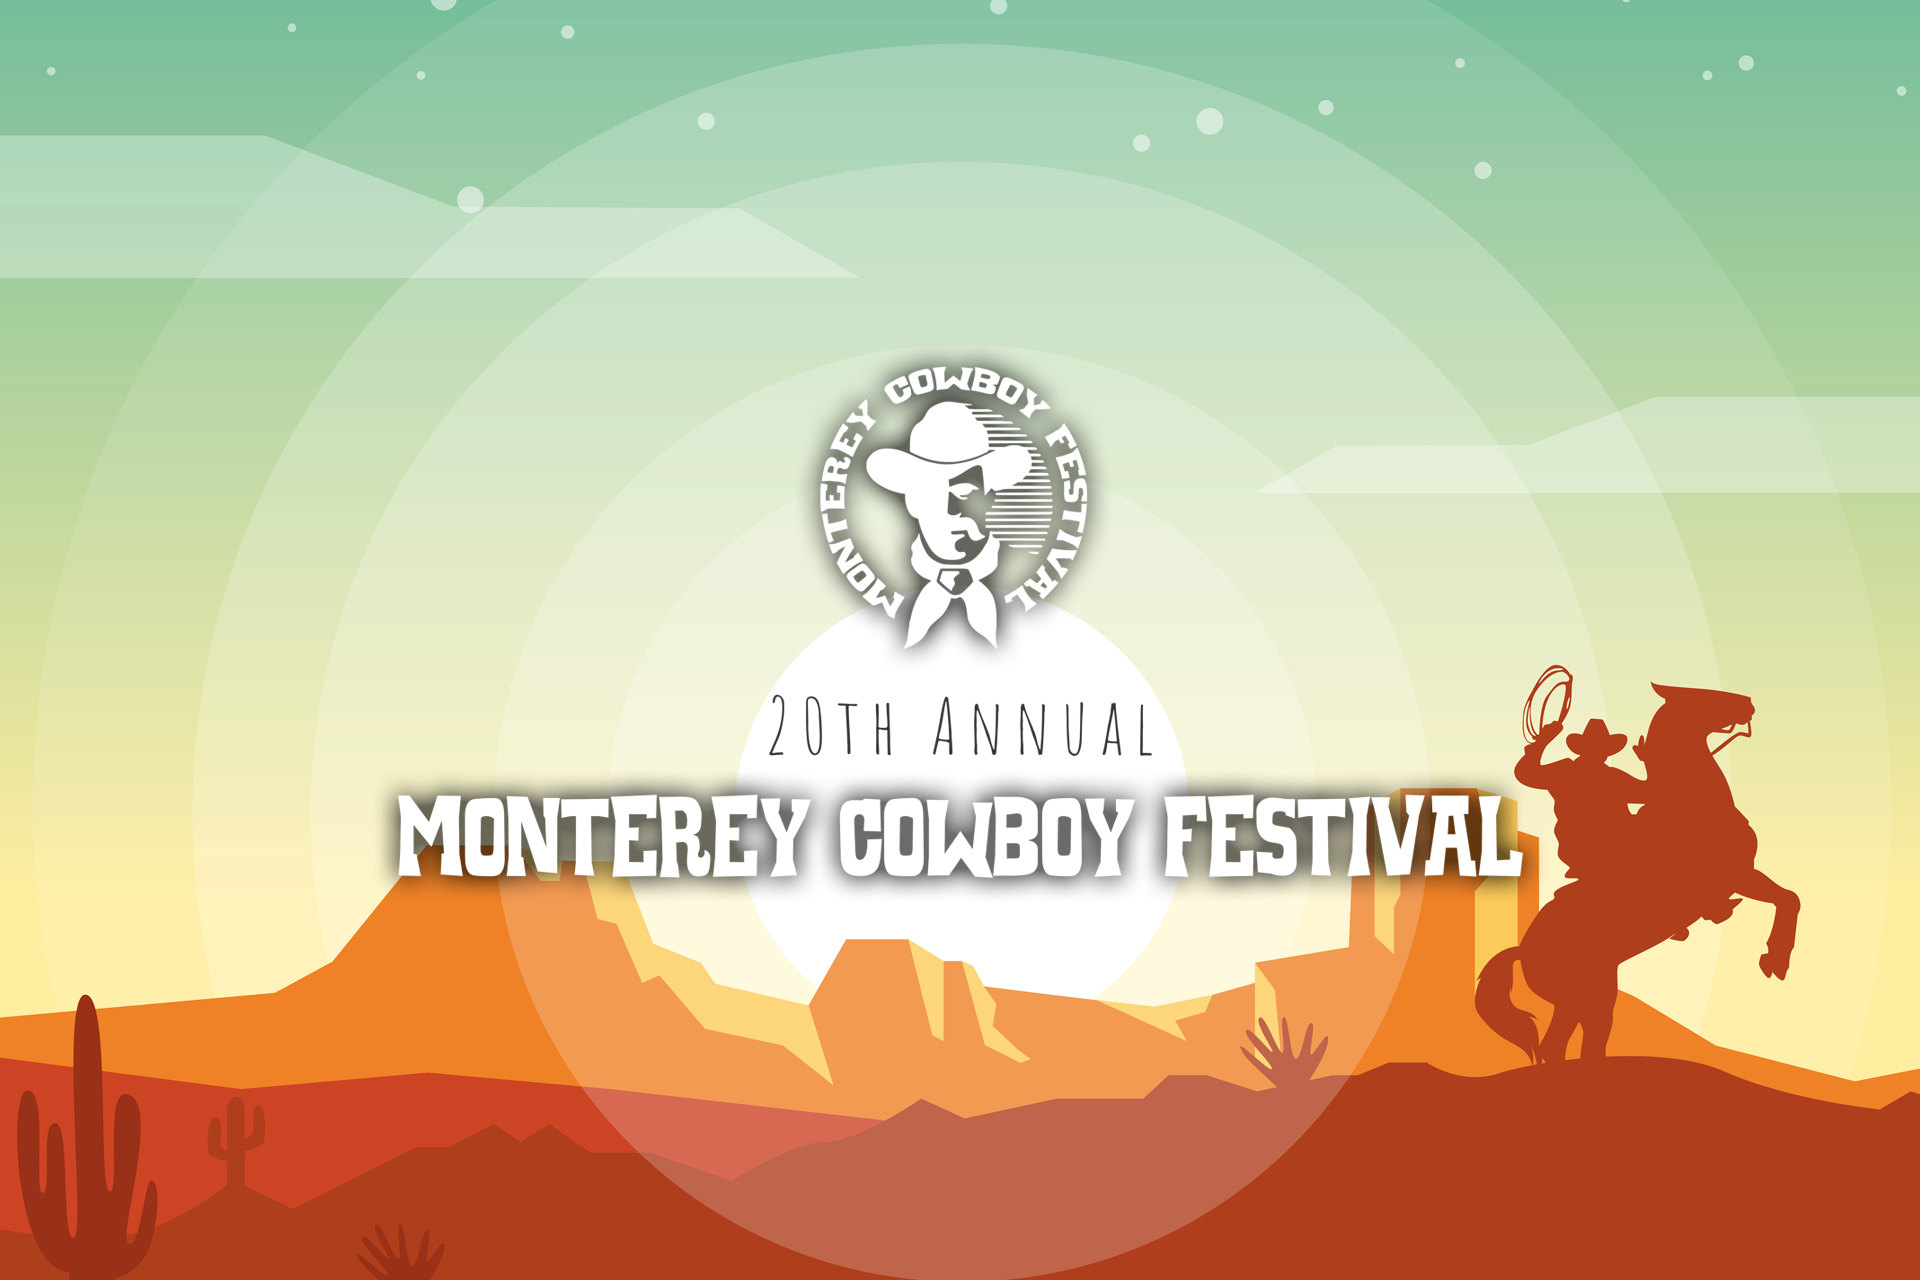 Cowboy Festival at the Monterey County Fairgrounds